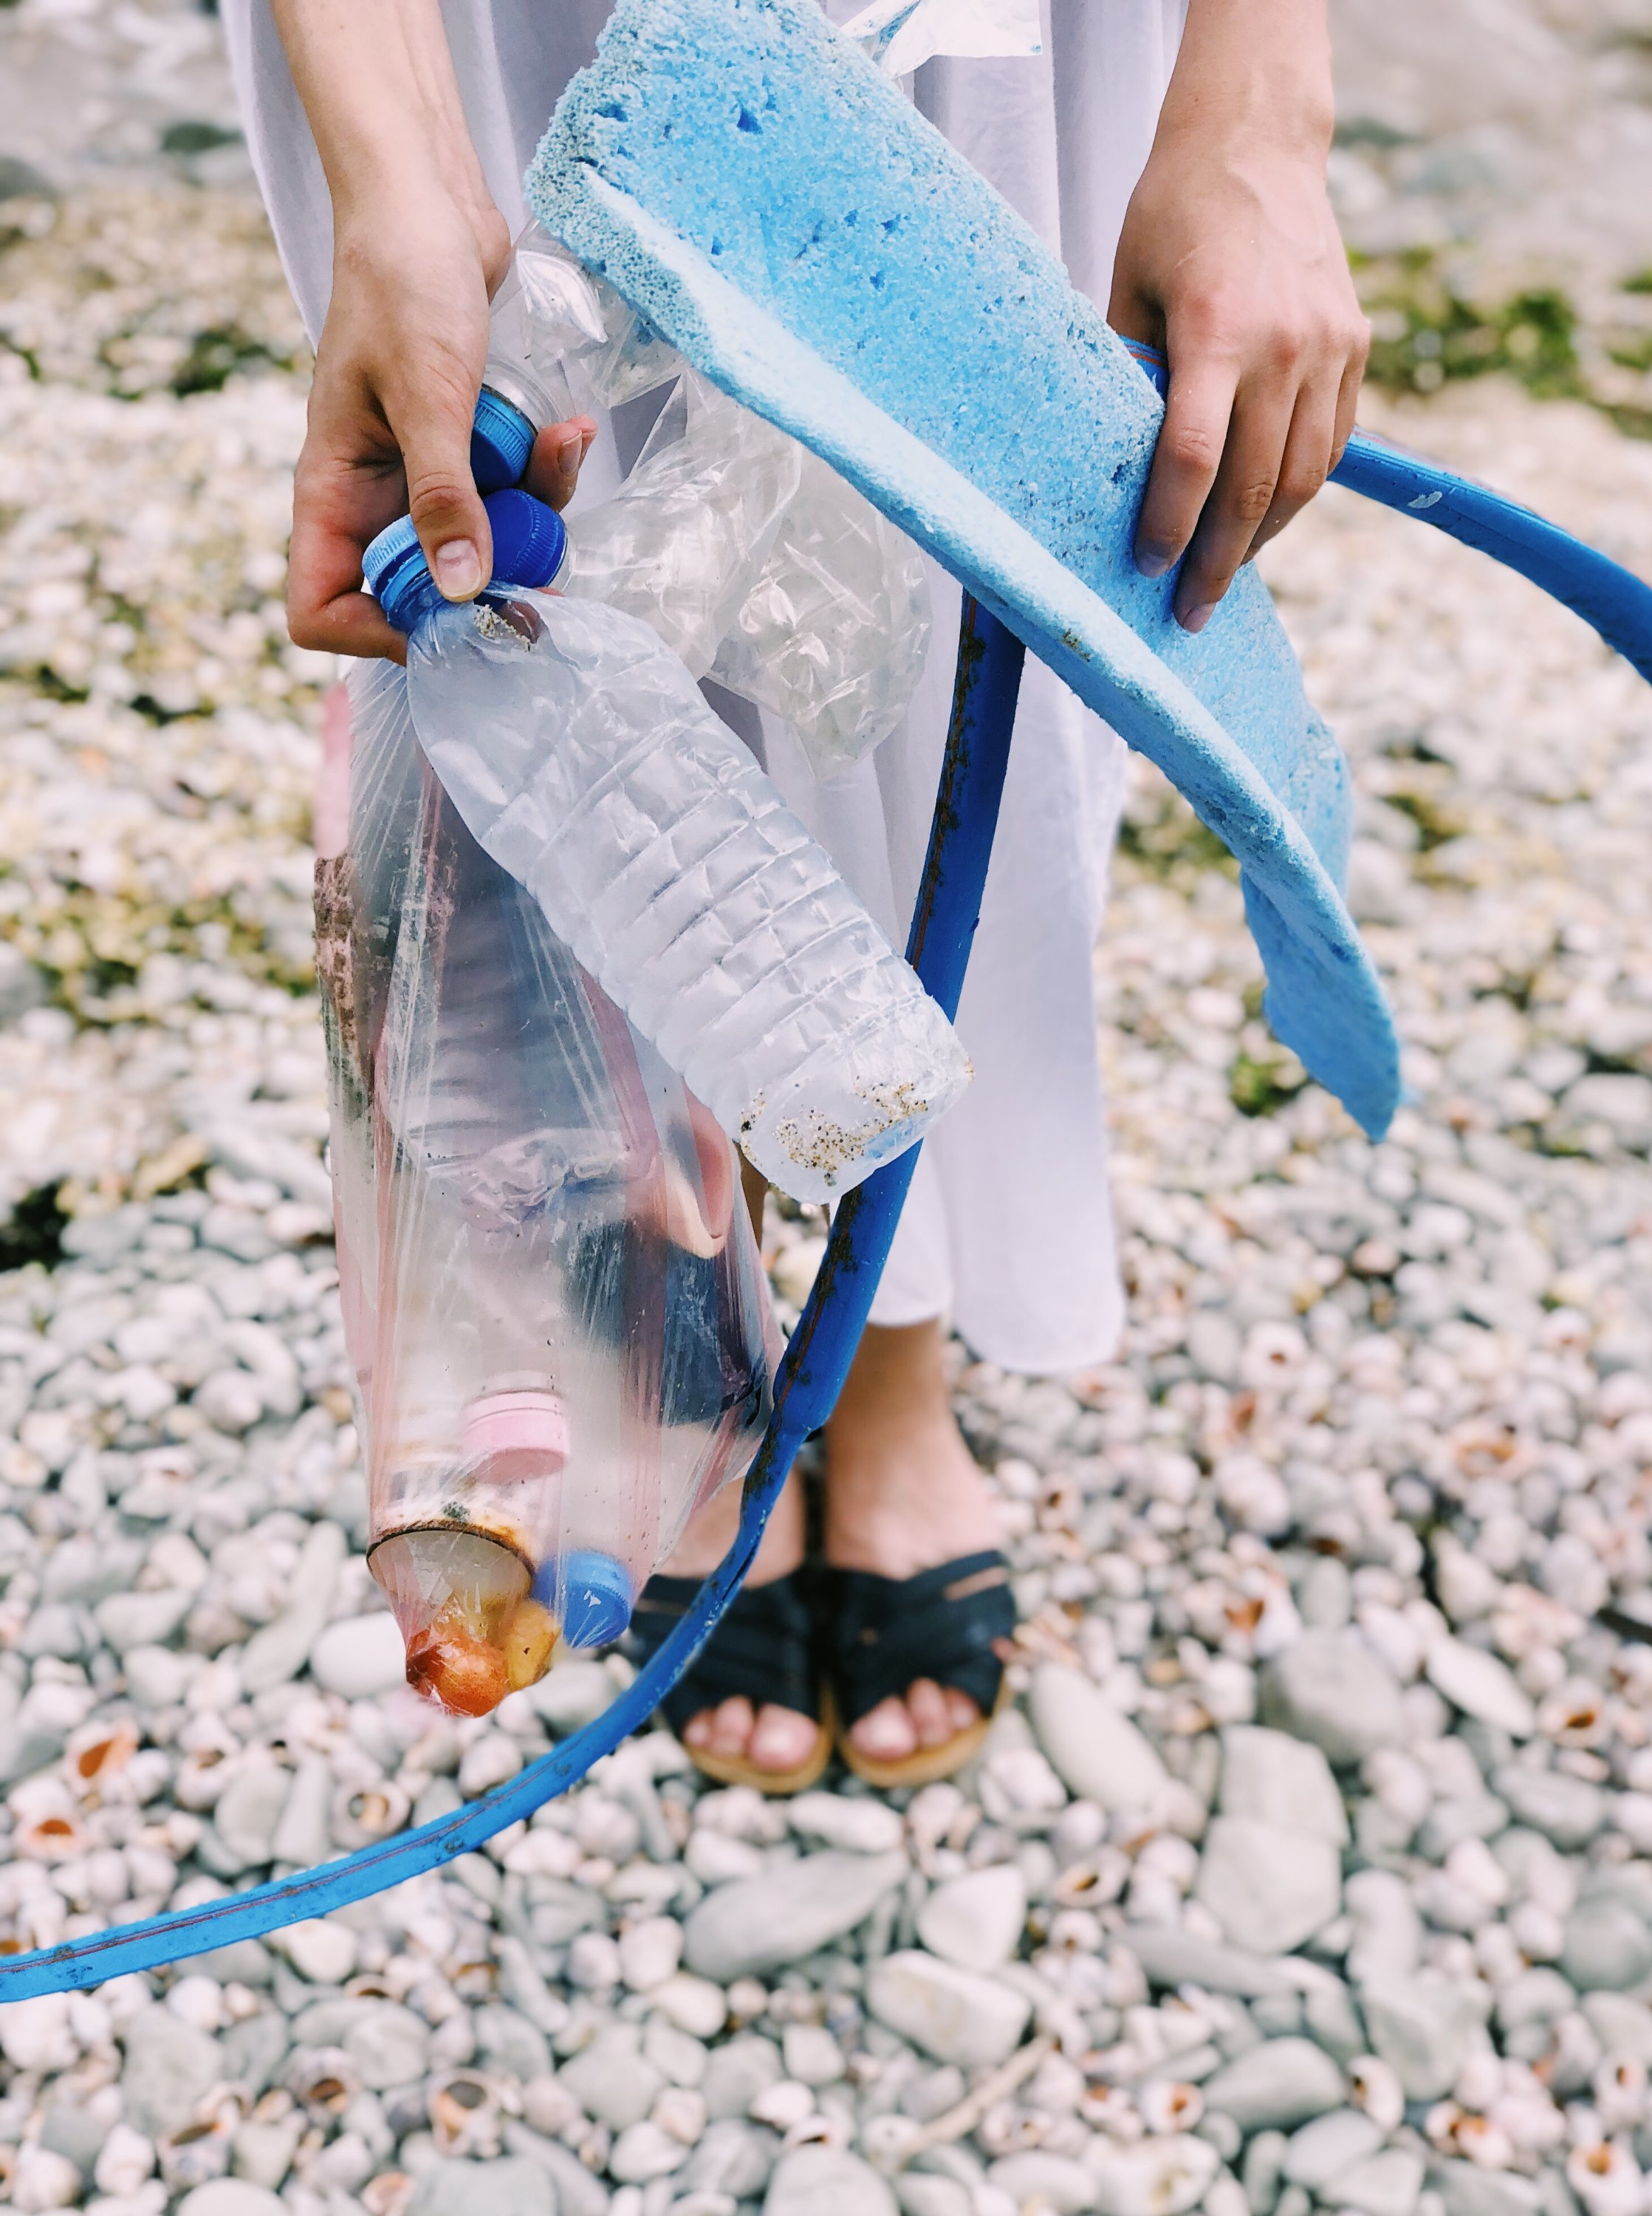 Beach clean up, lady holding plastic litter